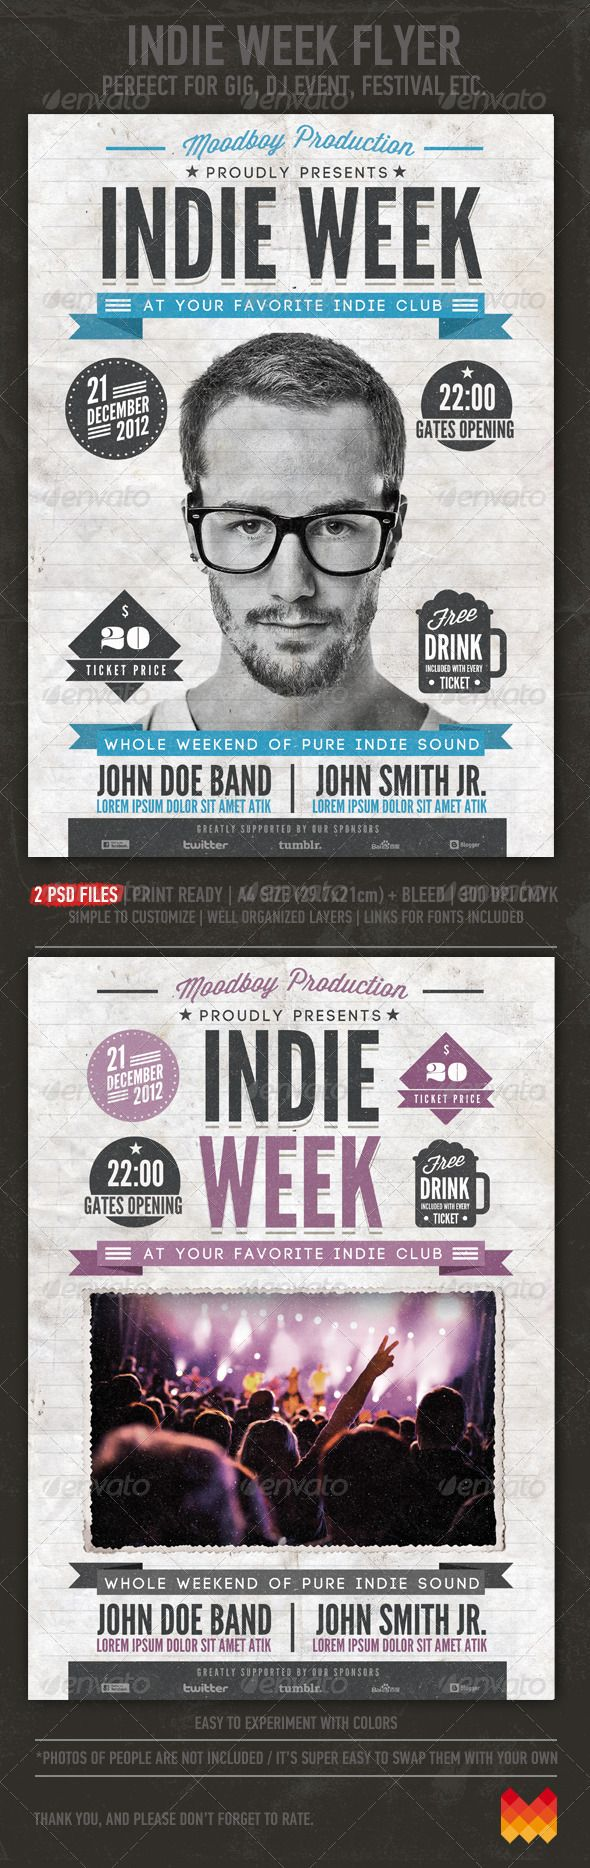 Indie Week Flyer/Poster PSD Print Template   Download: http://graphicriver.net/item/indie-week-flyerposter/3552627?WT.ac=category_thumbWT.z_author=moodboyref=ksioks